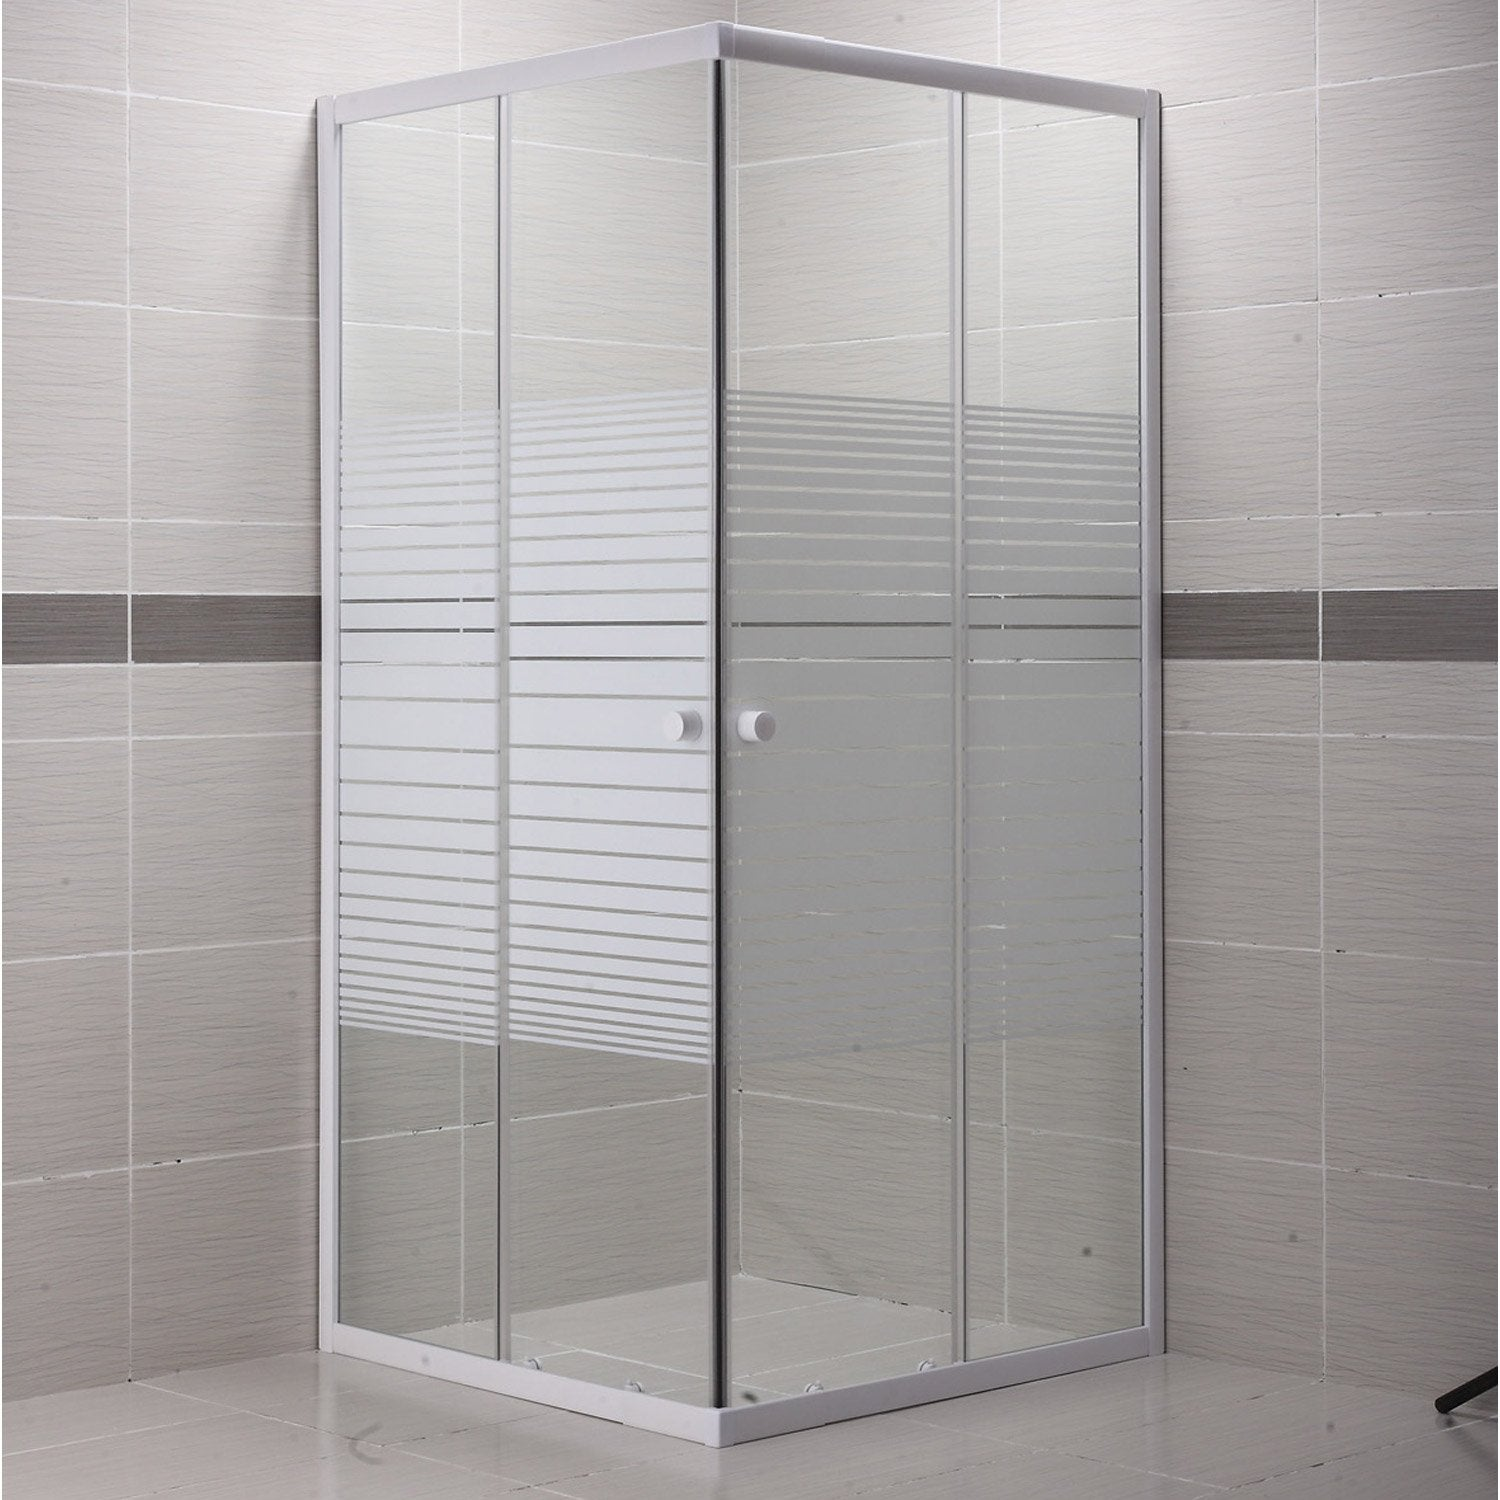 Porte de douche coulissante angle carr x cm for Portes de douches